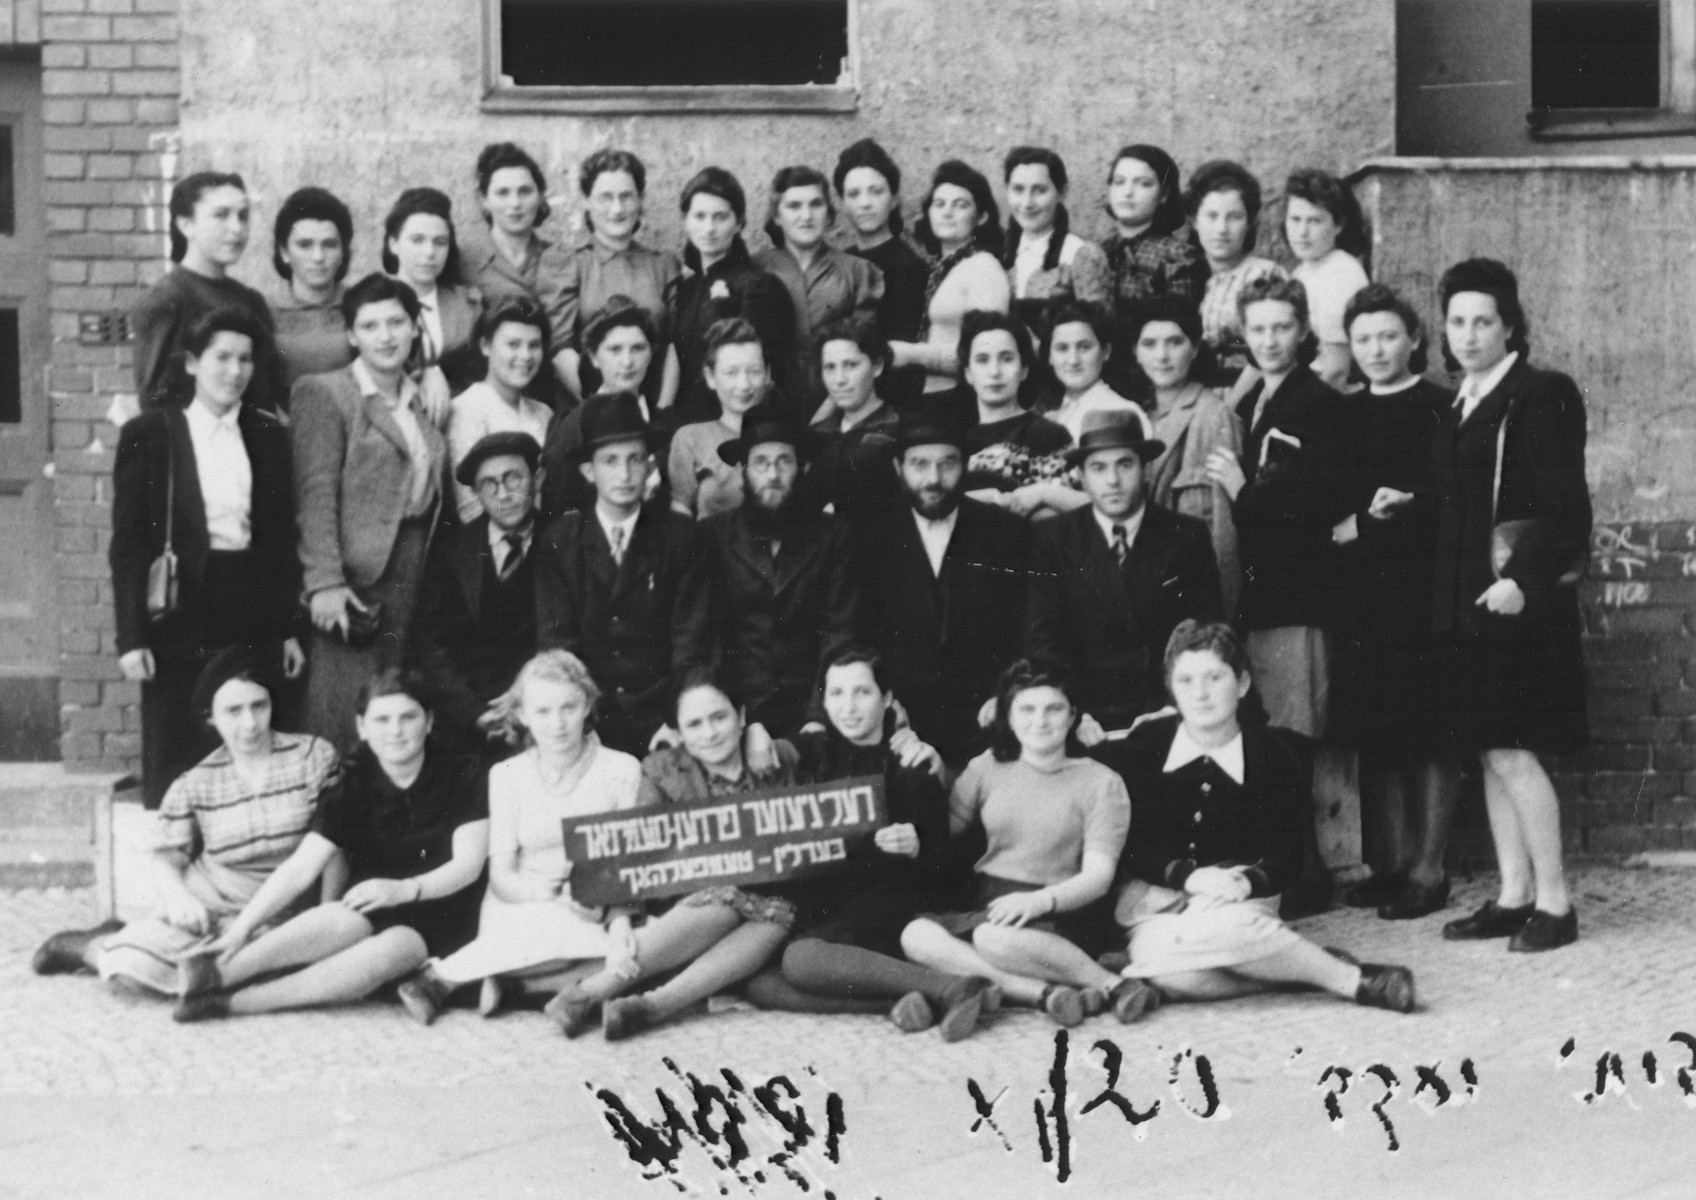 Group portrait of the students and faculty of the Beit Yaakov school in the Tempelhof displaced persons camp.